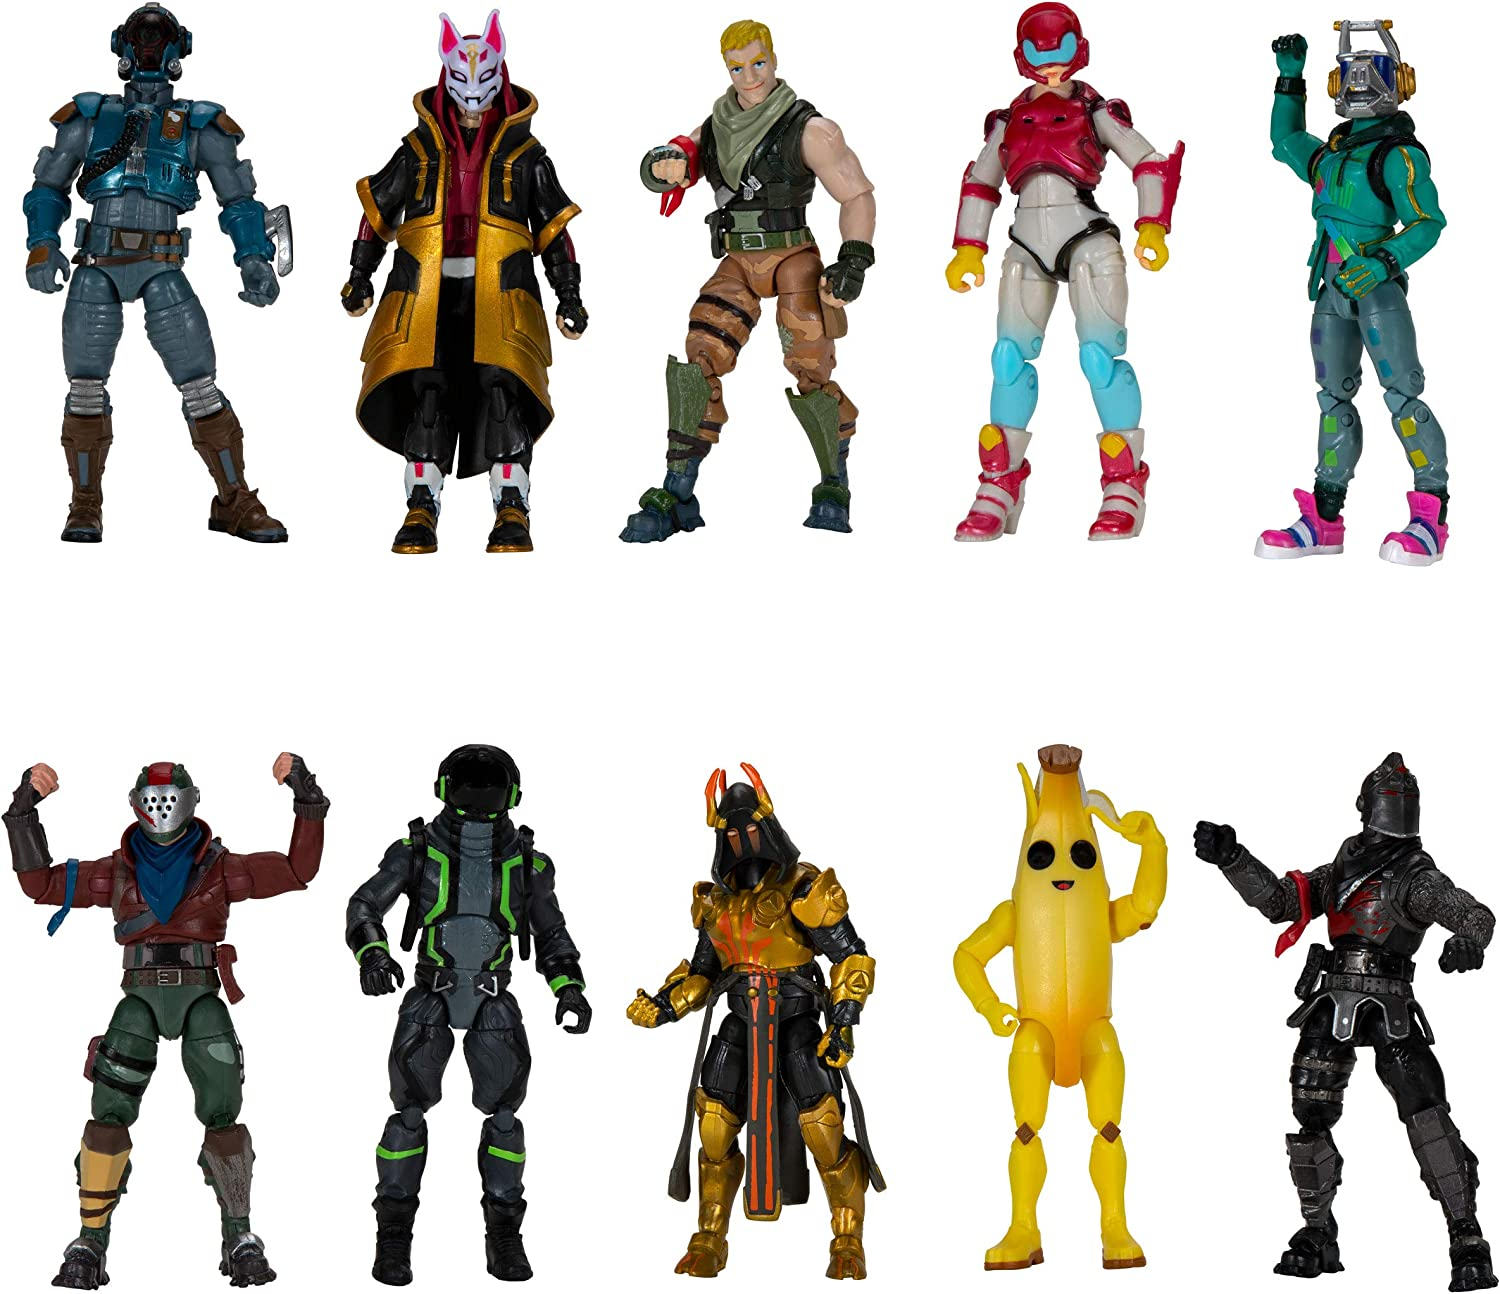 Amazon Com Fortnite The Chapter 1 Collection Ten 4 Action Figures Featuring Recruit Jonesy Black Knight Rust Lord The Visitor Drift Dj Yonder Ice King Gold Peely Rox Eternal Voyager Toys Games